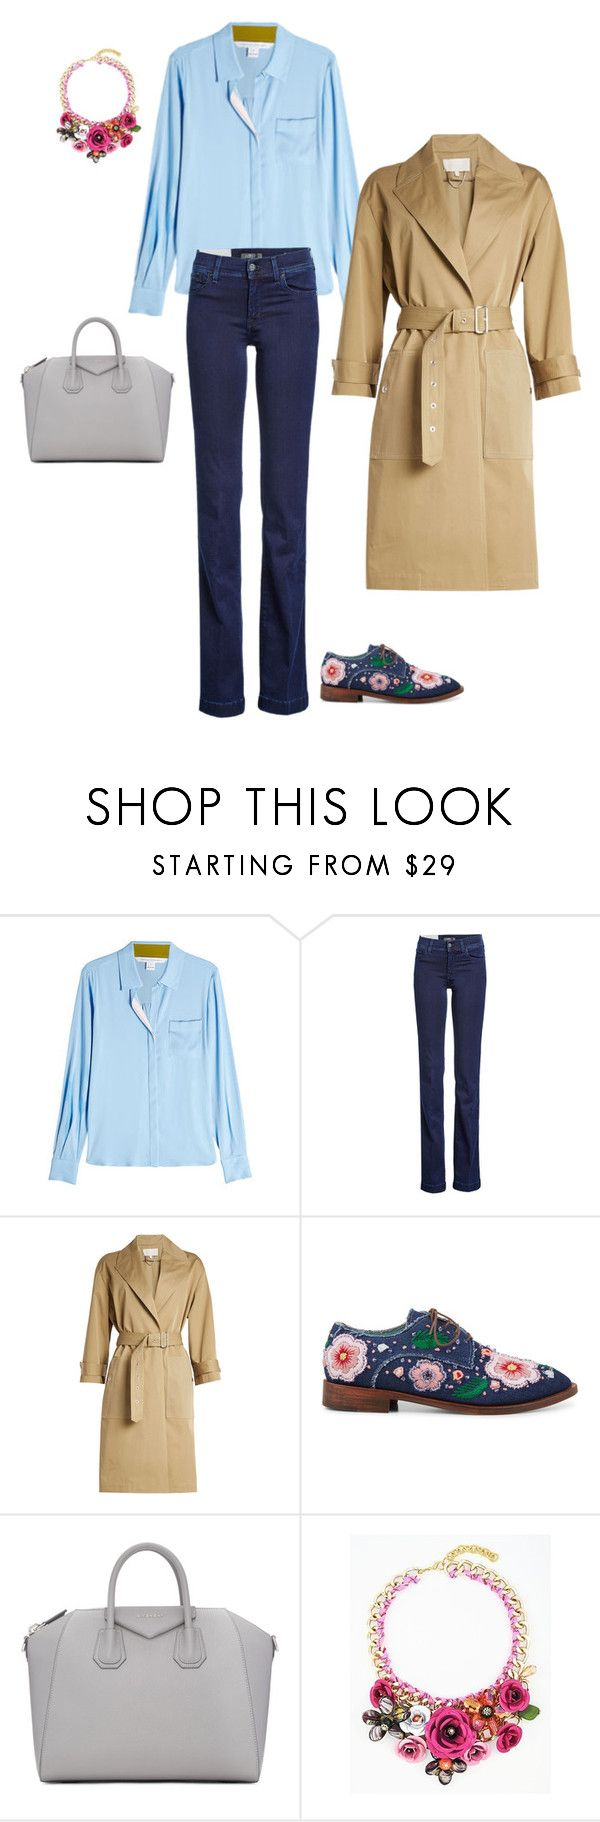 13 by asvetik on Polyvore featuring мода, Diane Von Furstenberg, Vanessa Bruno, 7 For All Mankind, Anouki and Givenchy